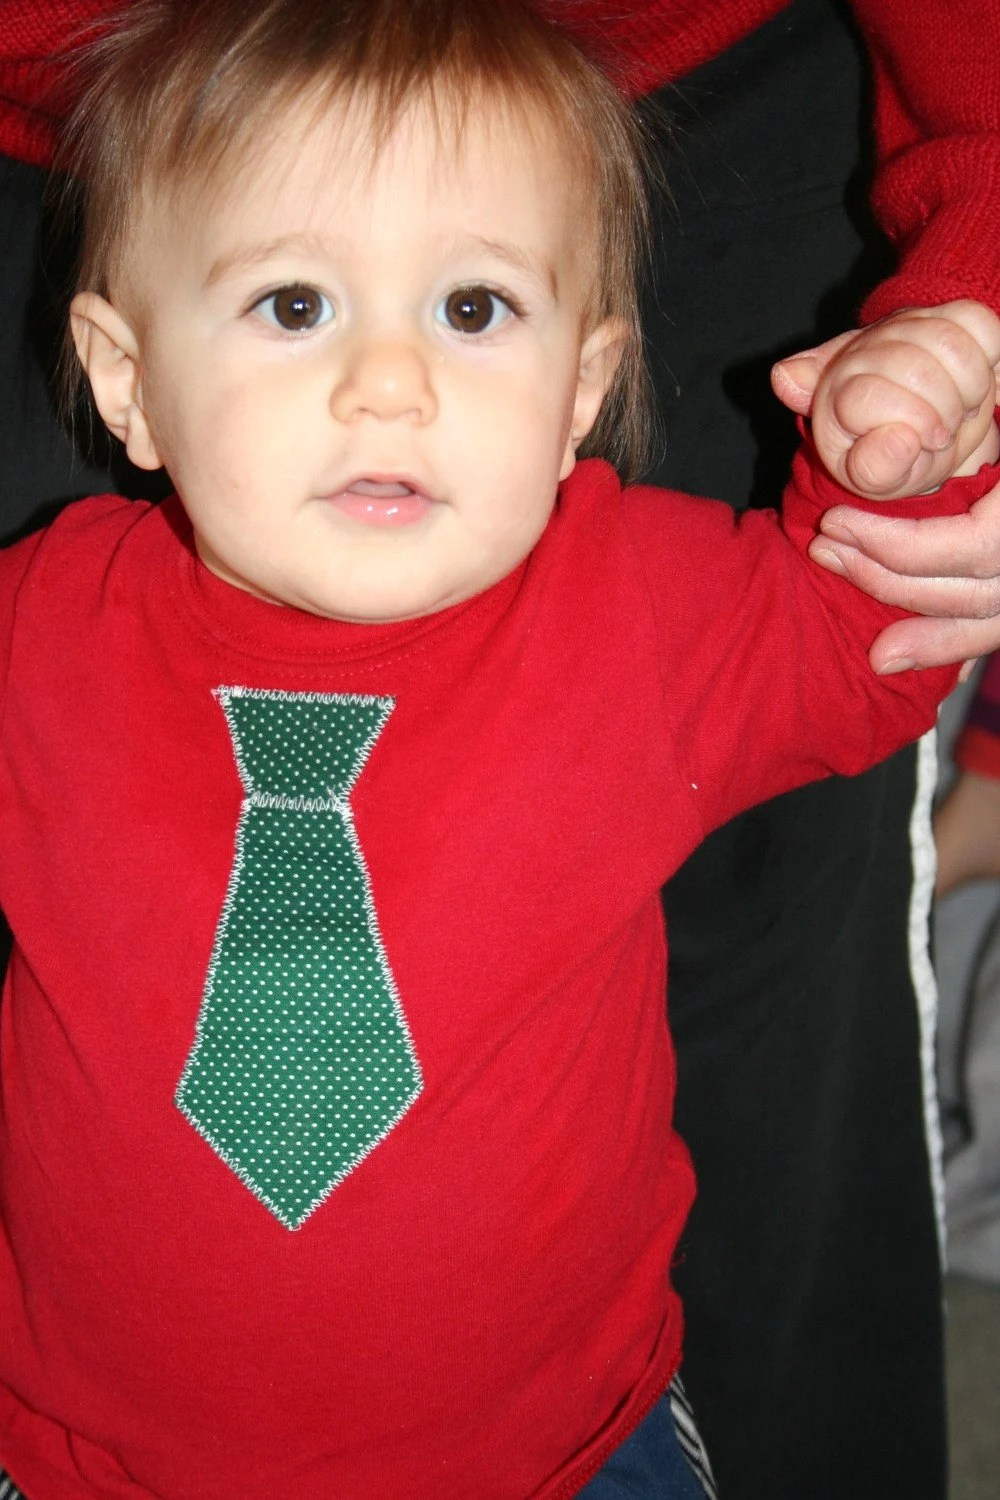 Red Long Sleeve Shirt with Green Polka Dot Tie 12 mos